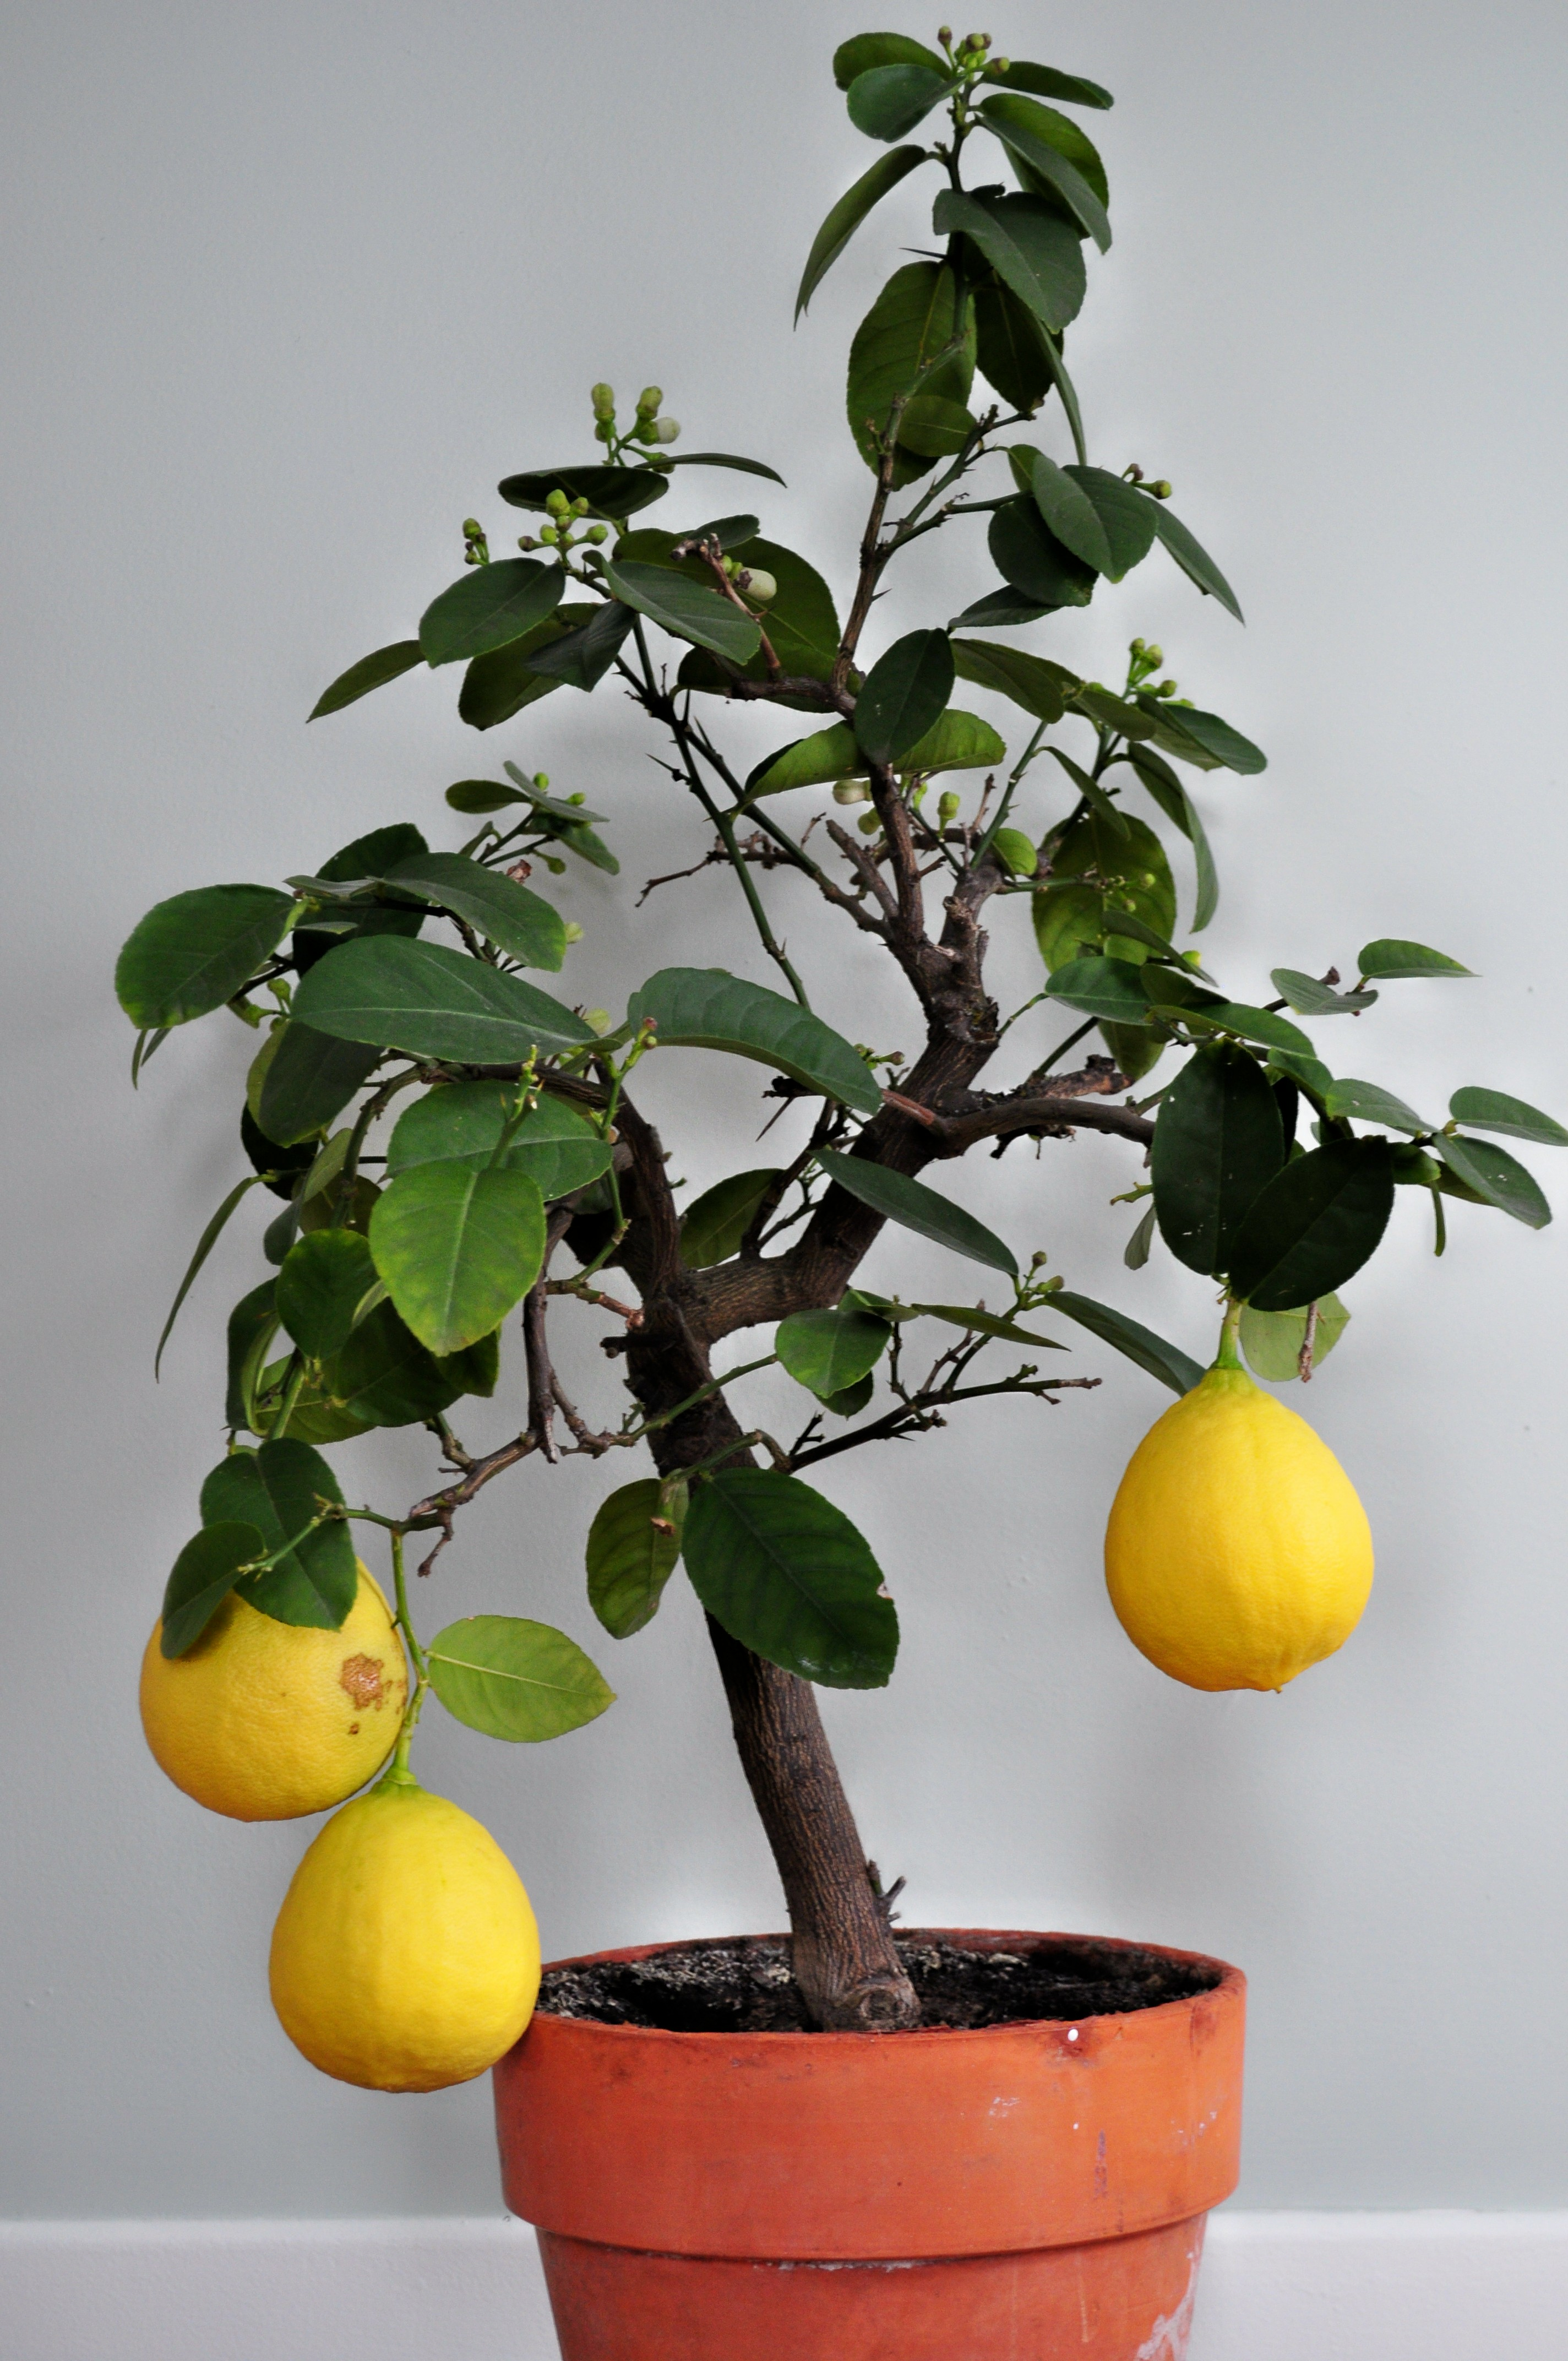 Six years later and i inherited his lemon tree fifty four years after